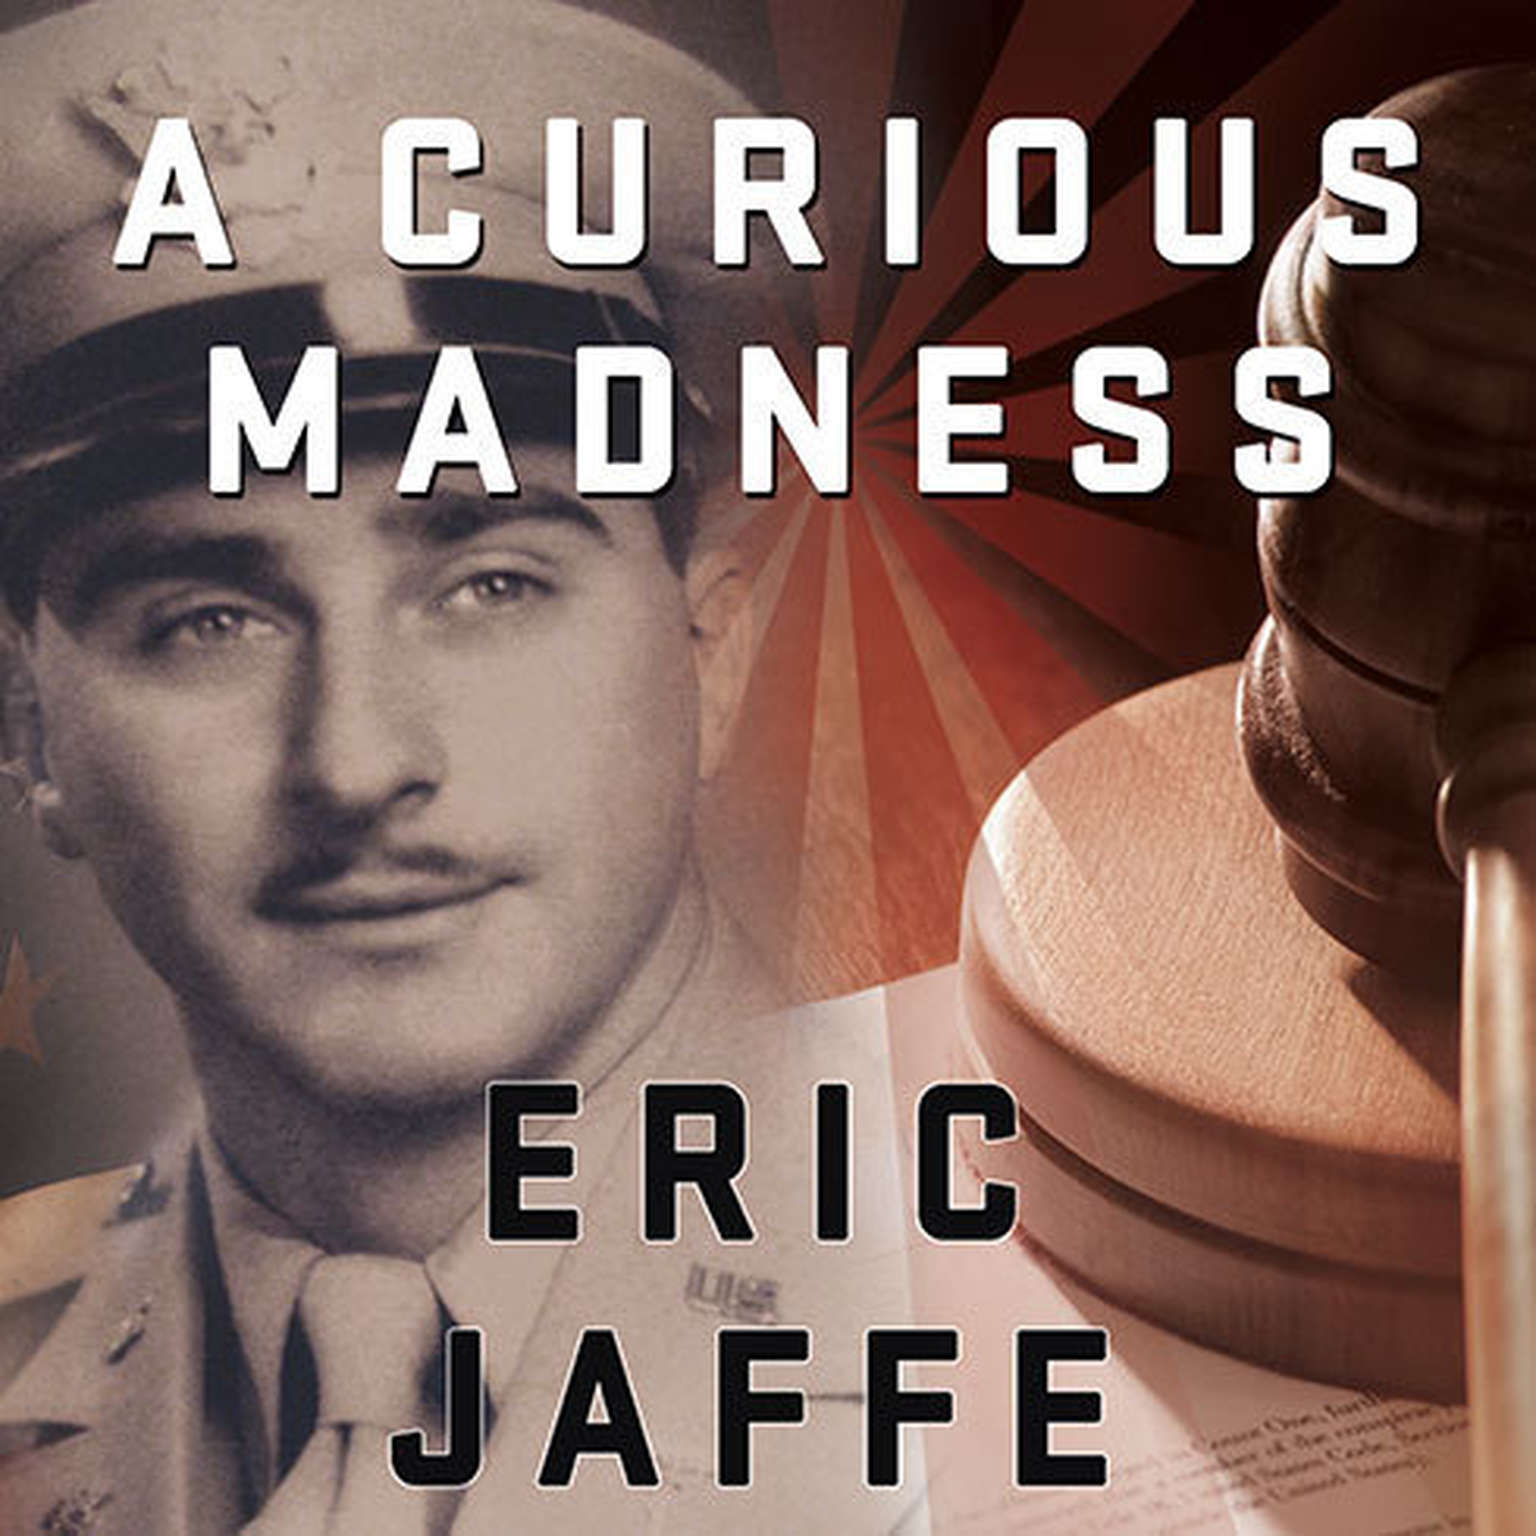 Printable A Curious Madness: An American Combat Psychiatrist, a Japanese War Crimes Suspect, and an Unsolved Mystery from World War II Audiobook Cover Art